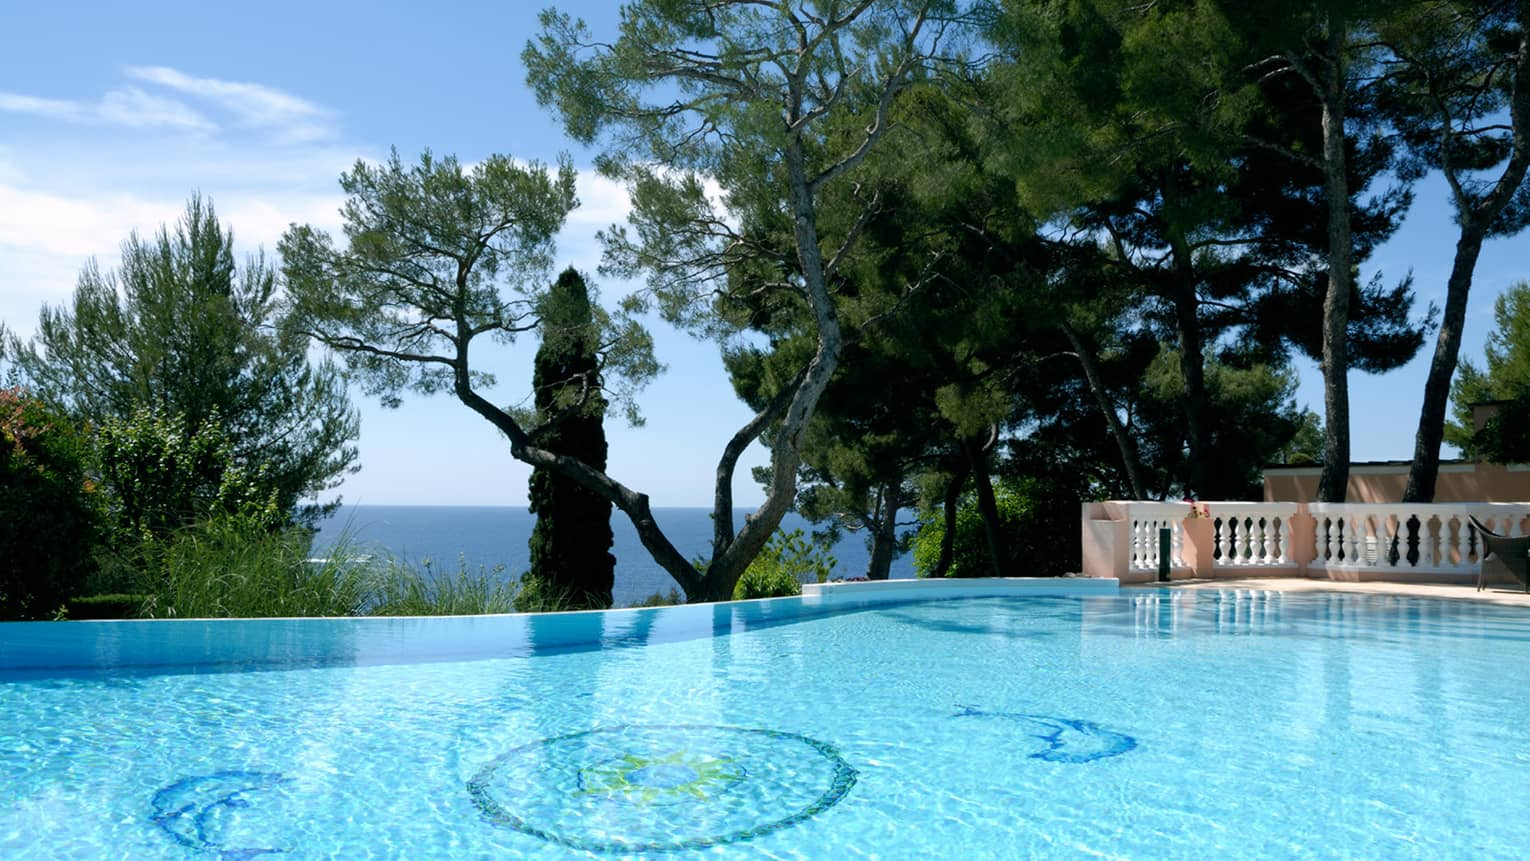 Blue outdoor swimming pool, trees, sea views